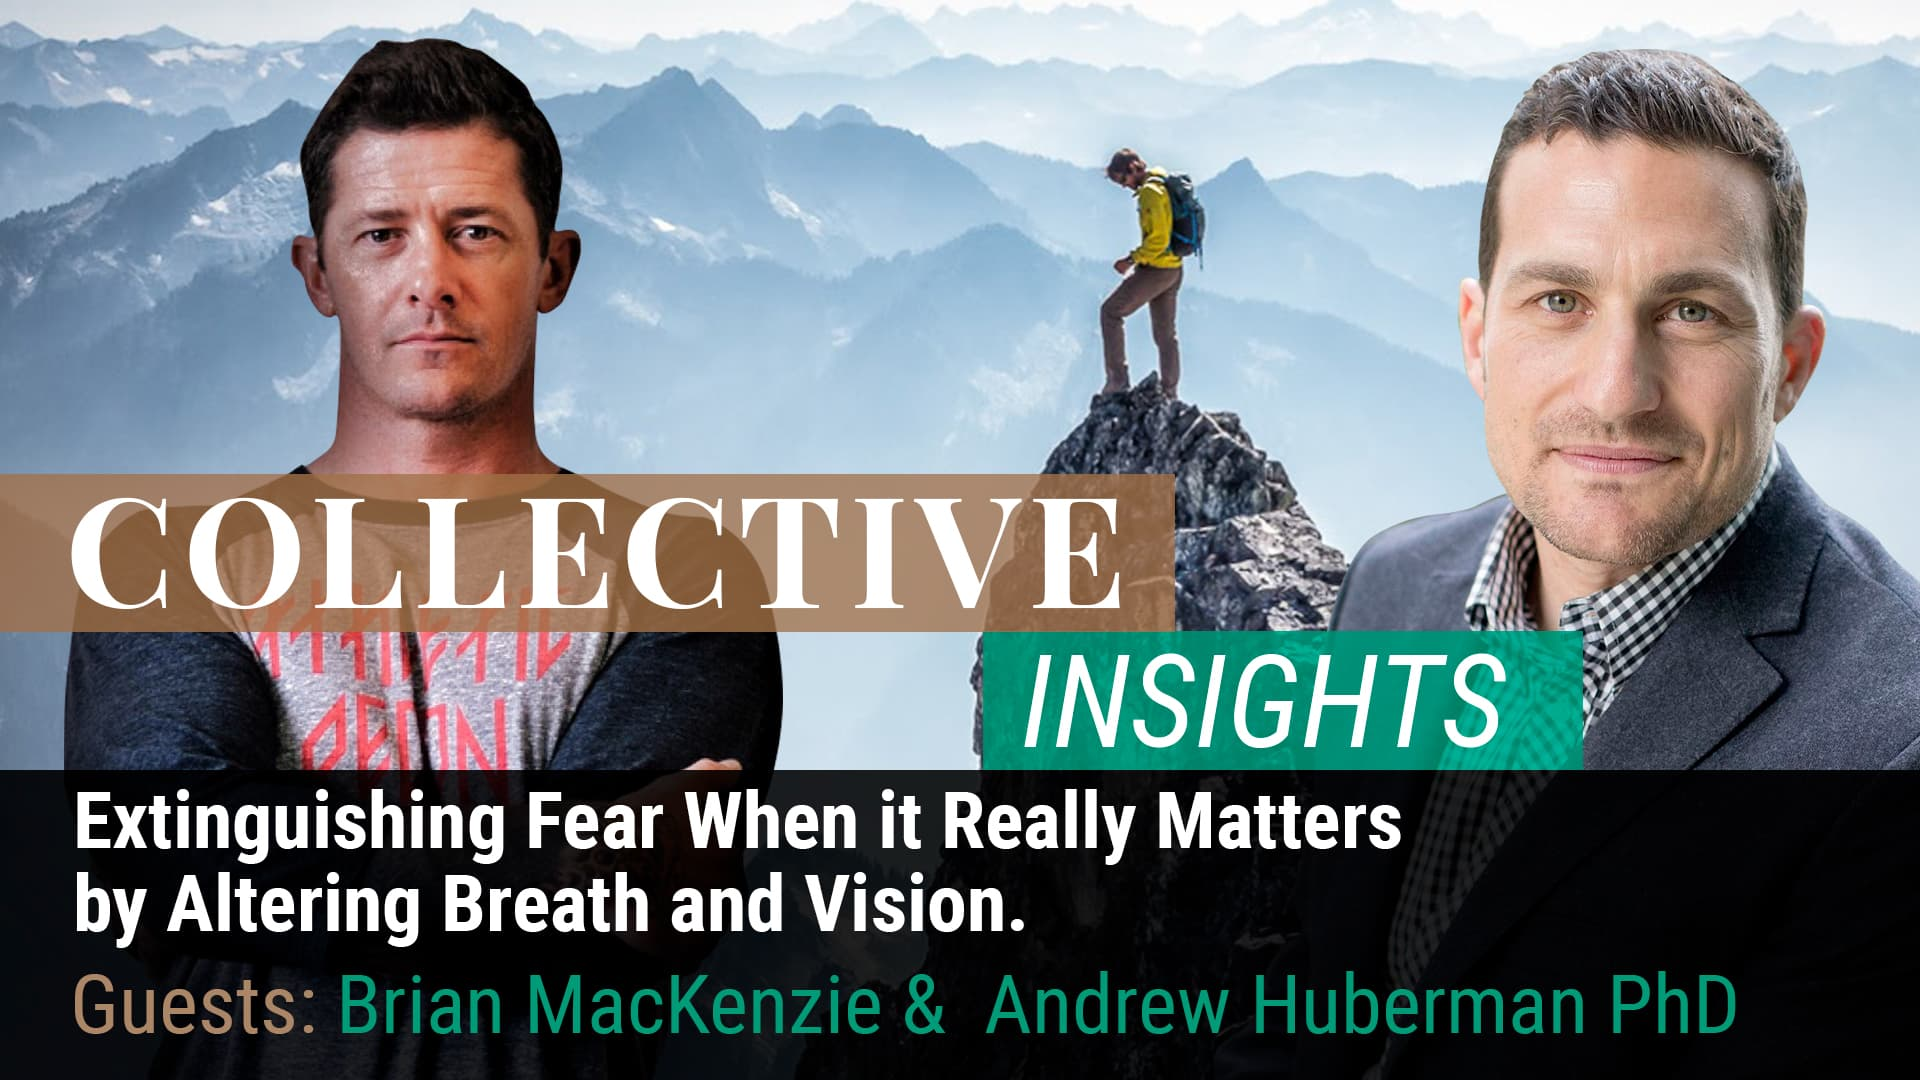 Extinguishing Fear When it Really Matters by Altering Breath and Vision.